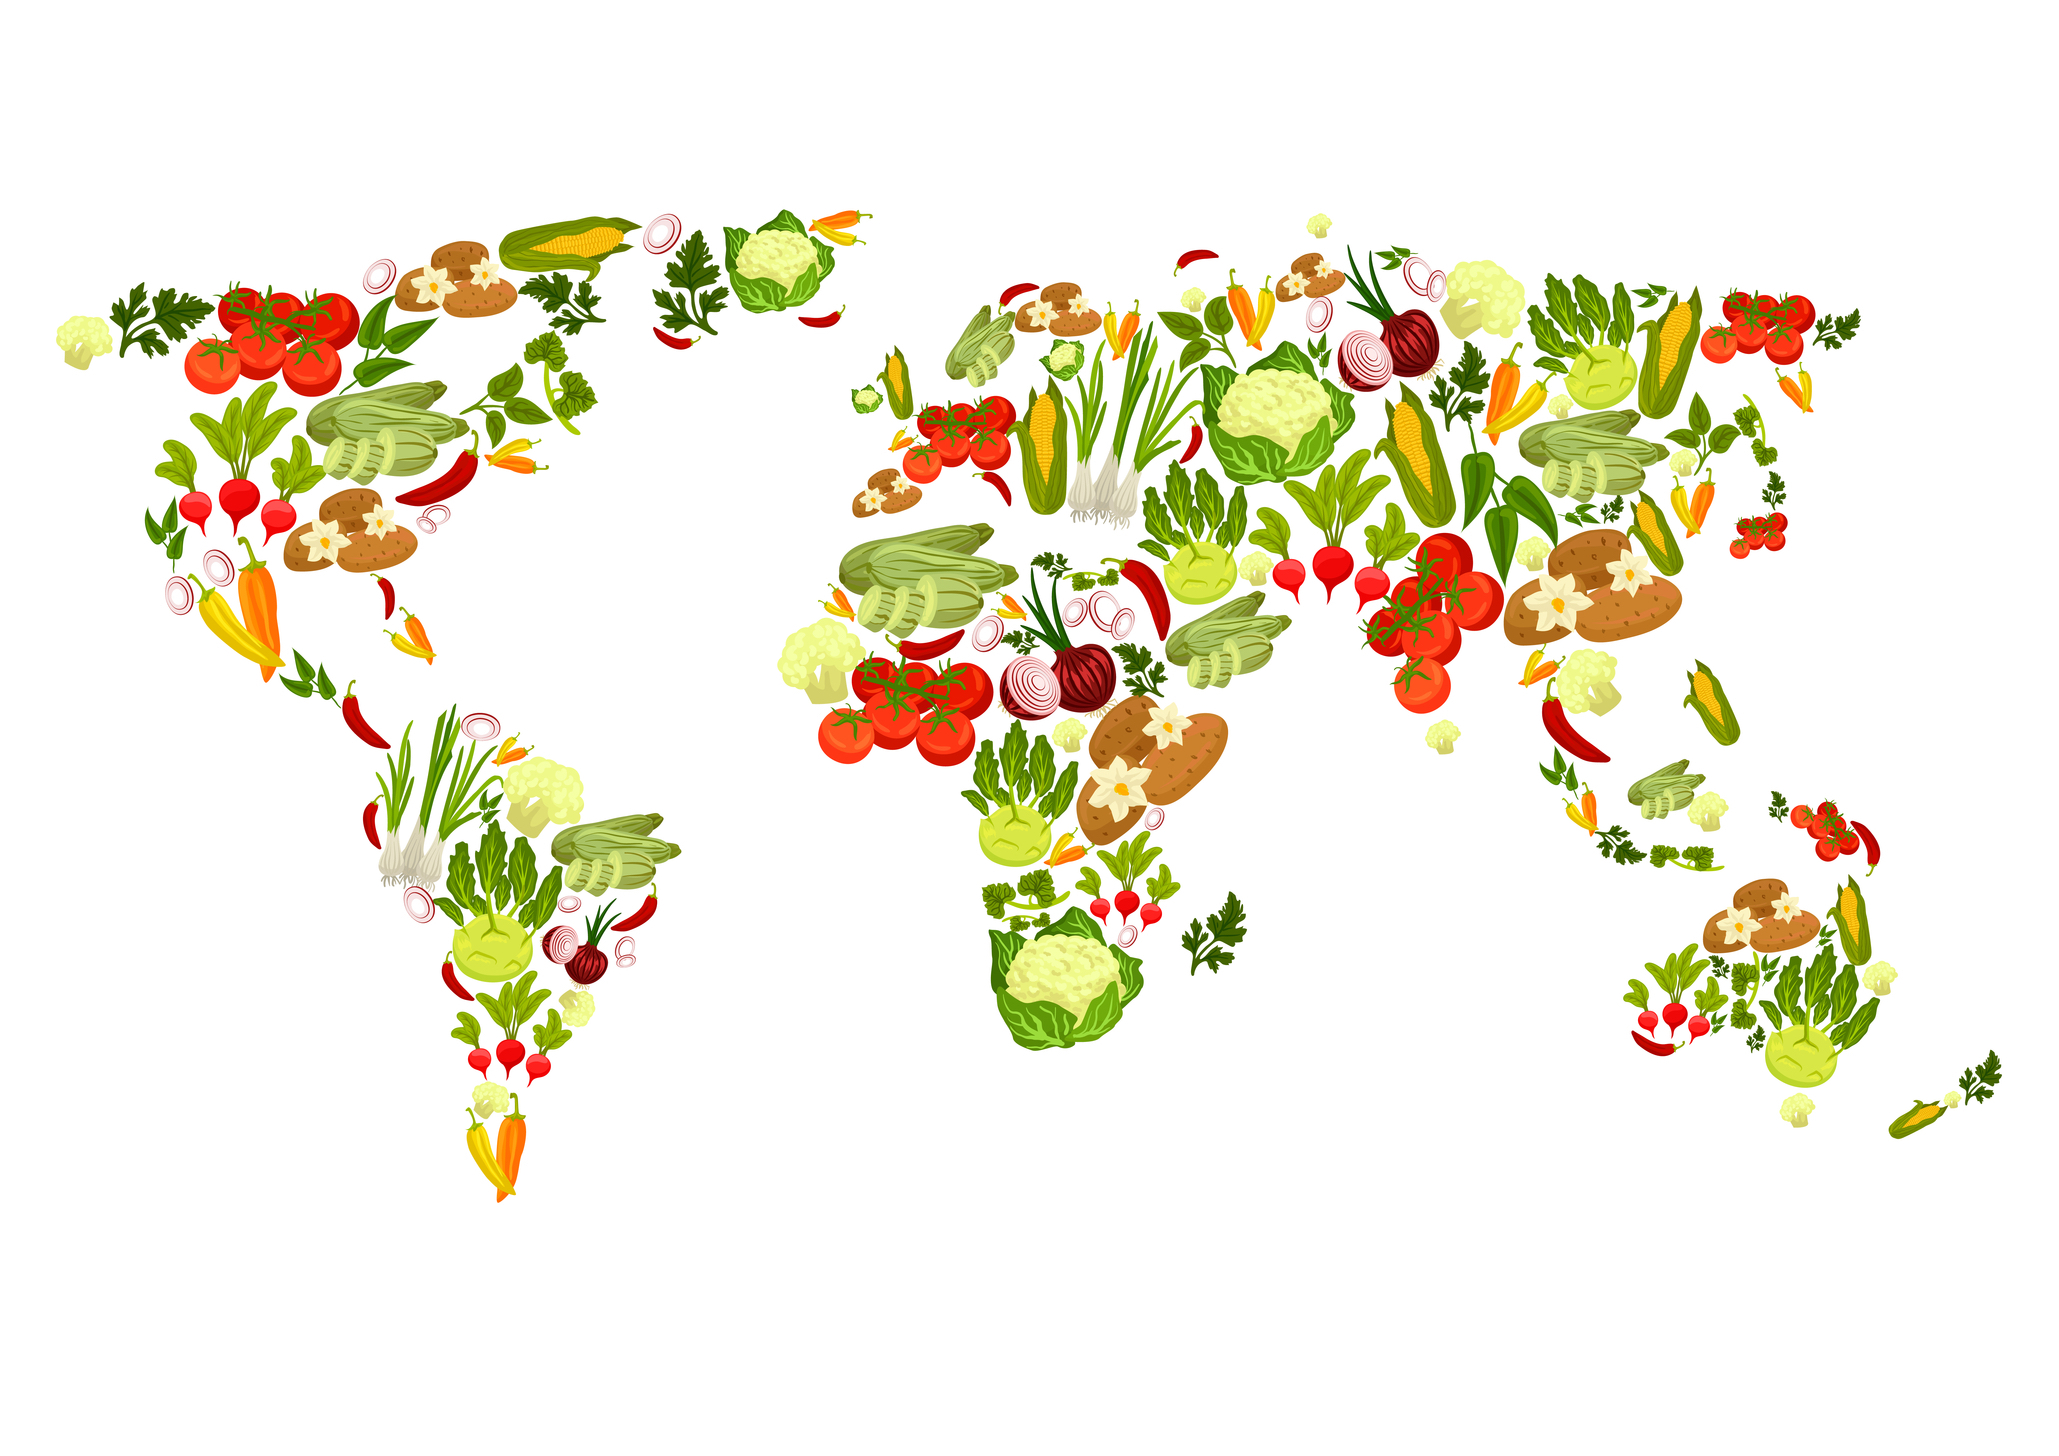 World Map of Veggies dreamstime_m_85261605 no text